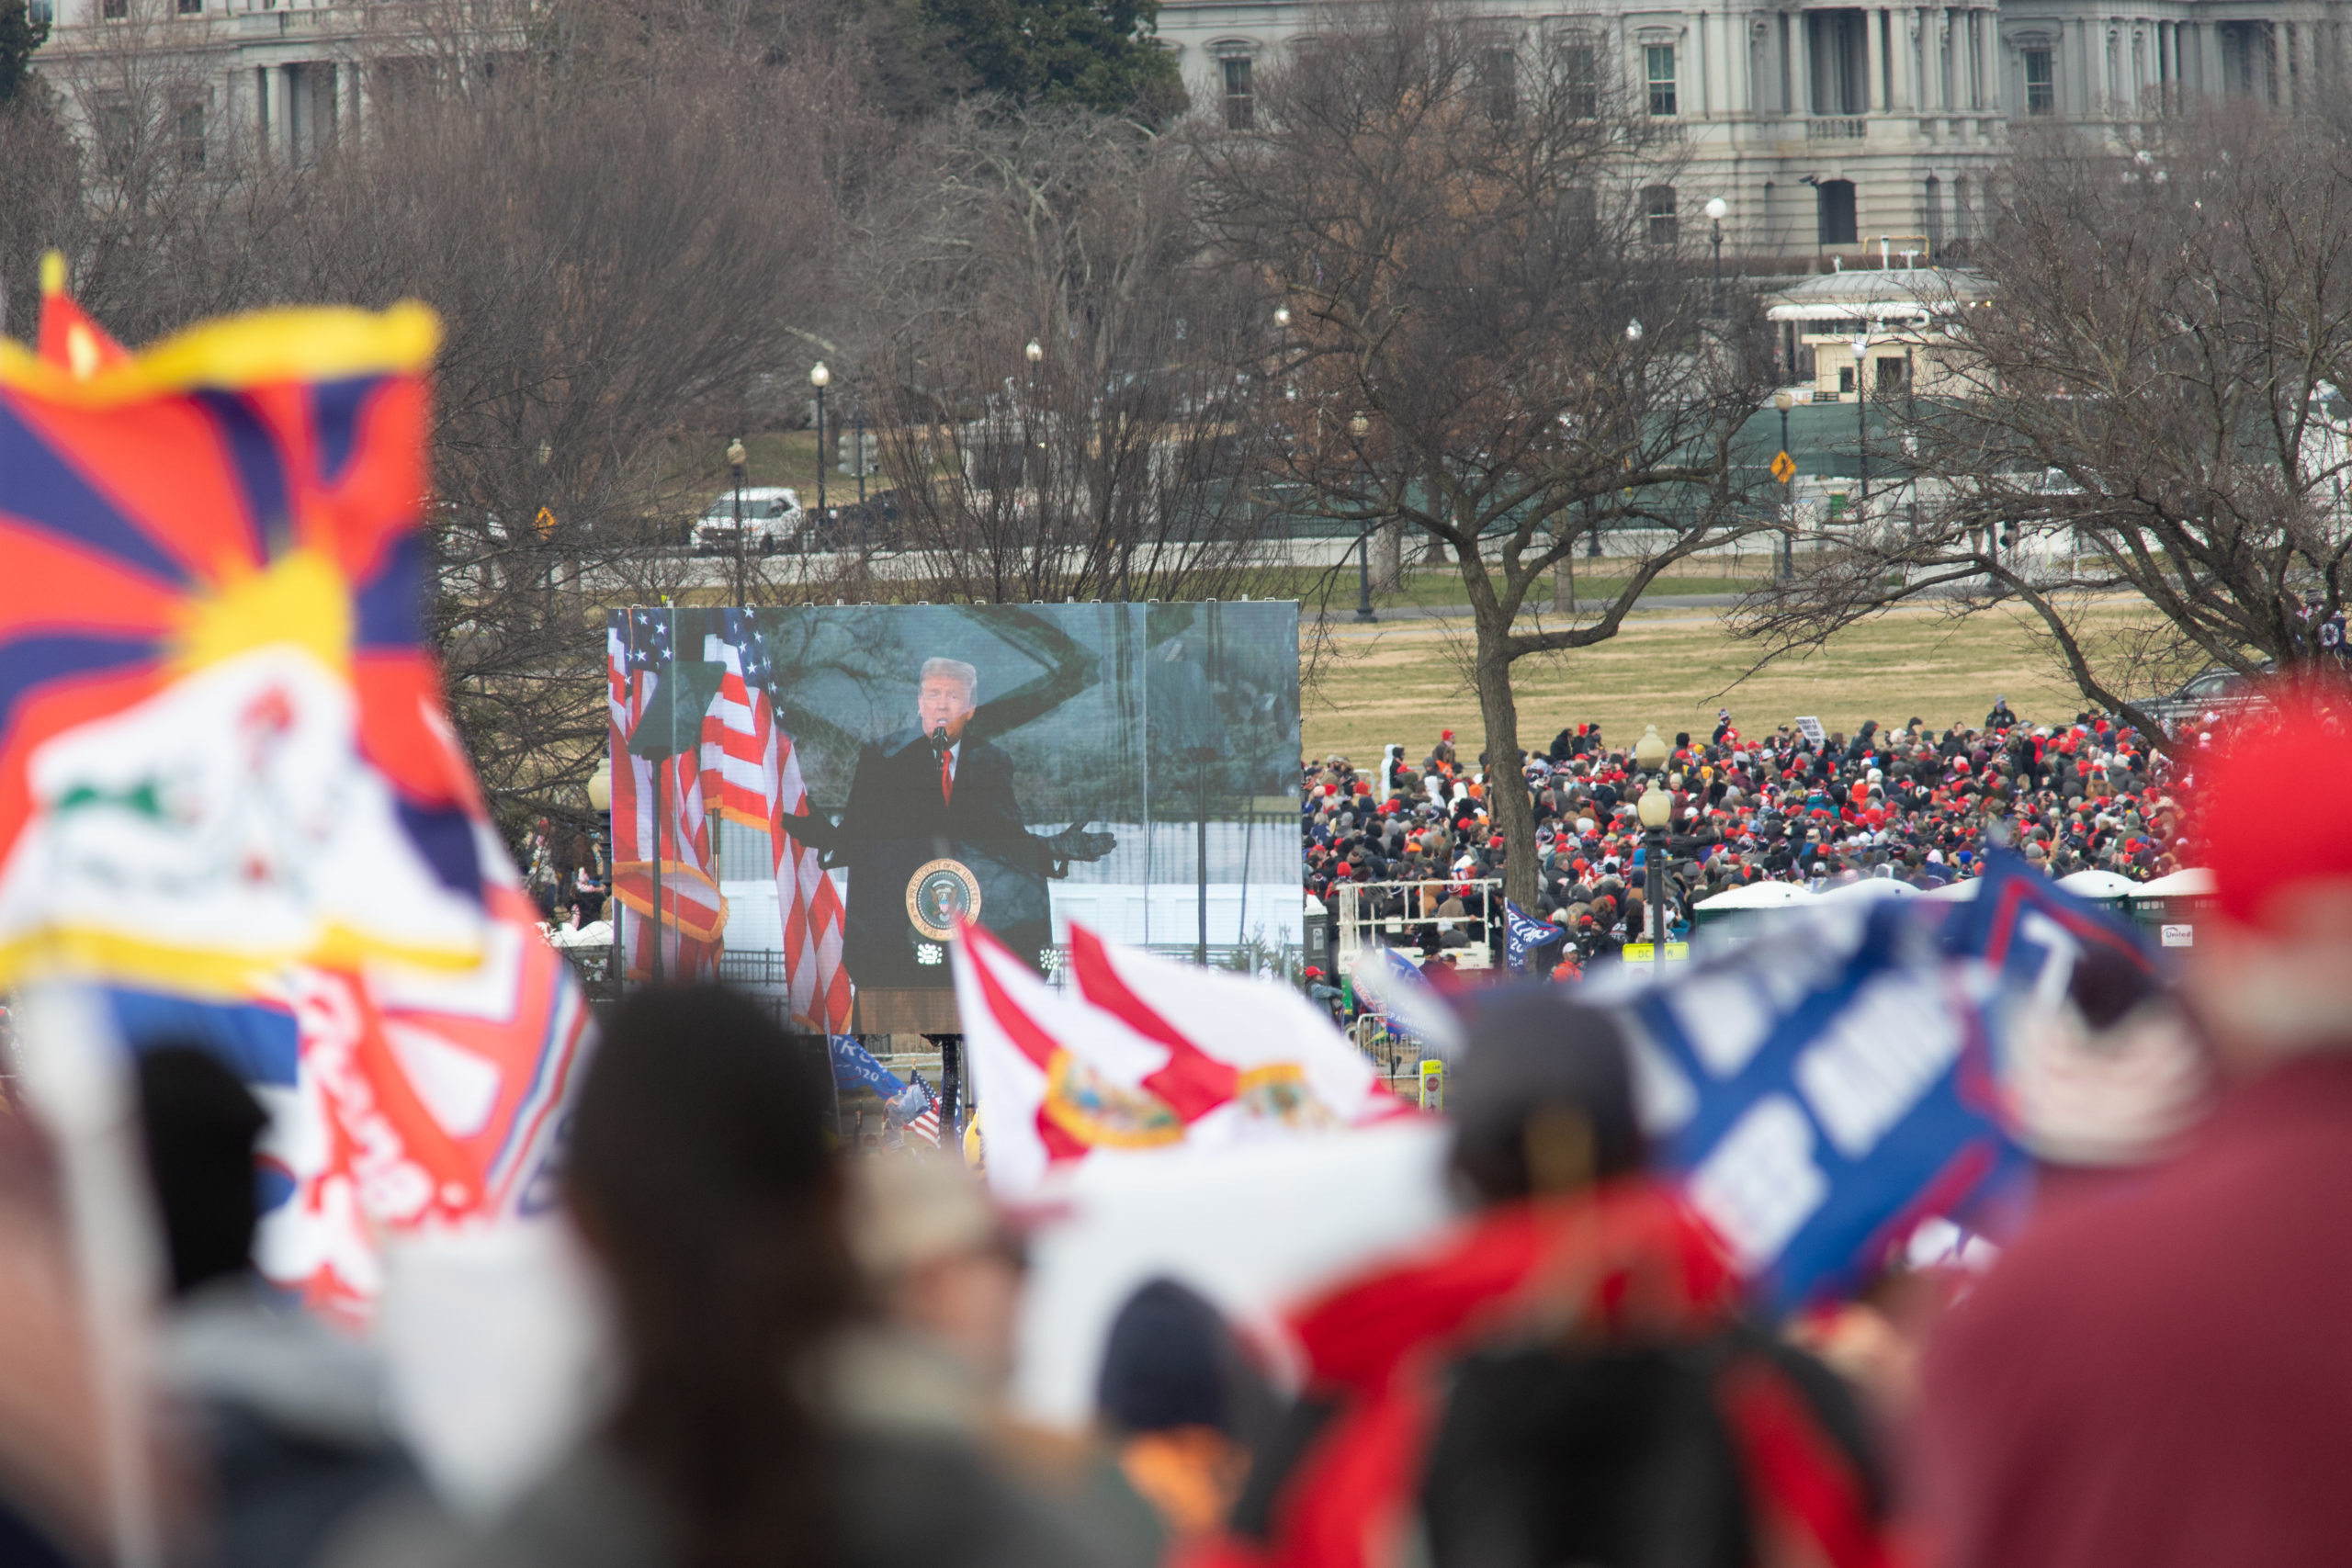 President Donald Trump addresses a crowd of thousands of supporters in Washington, D.C. on Jan. 6, 2021. (Kaylee Greenlee - Daily Caller News Foundation)